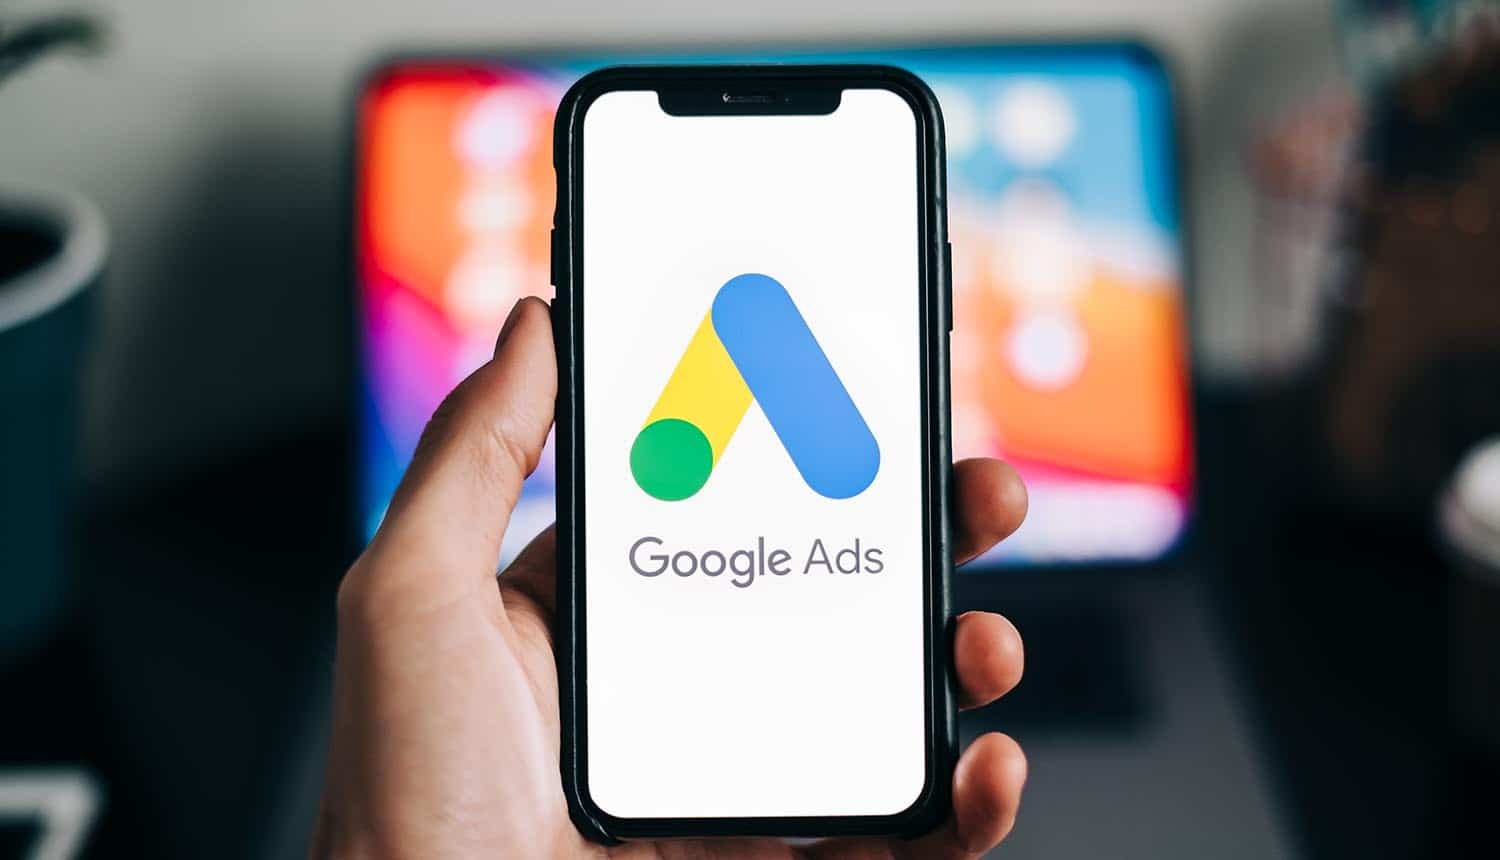 Google Ads logo on smartphone screen showing national security concern over ad auctions of ad exchanges